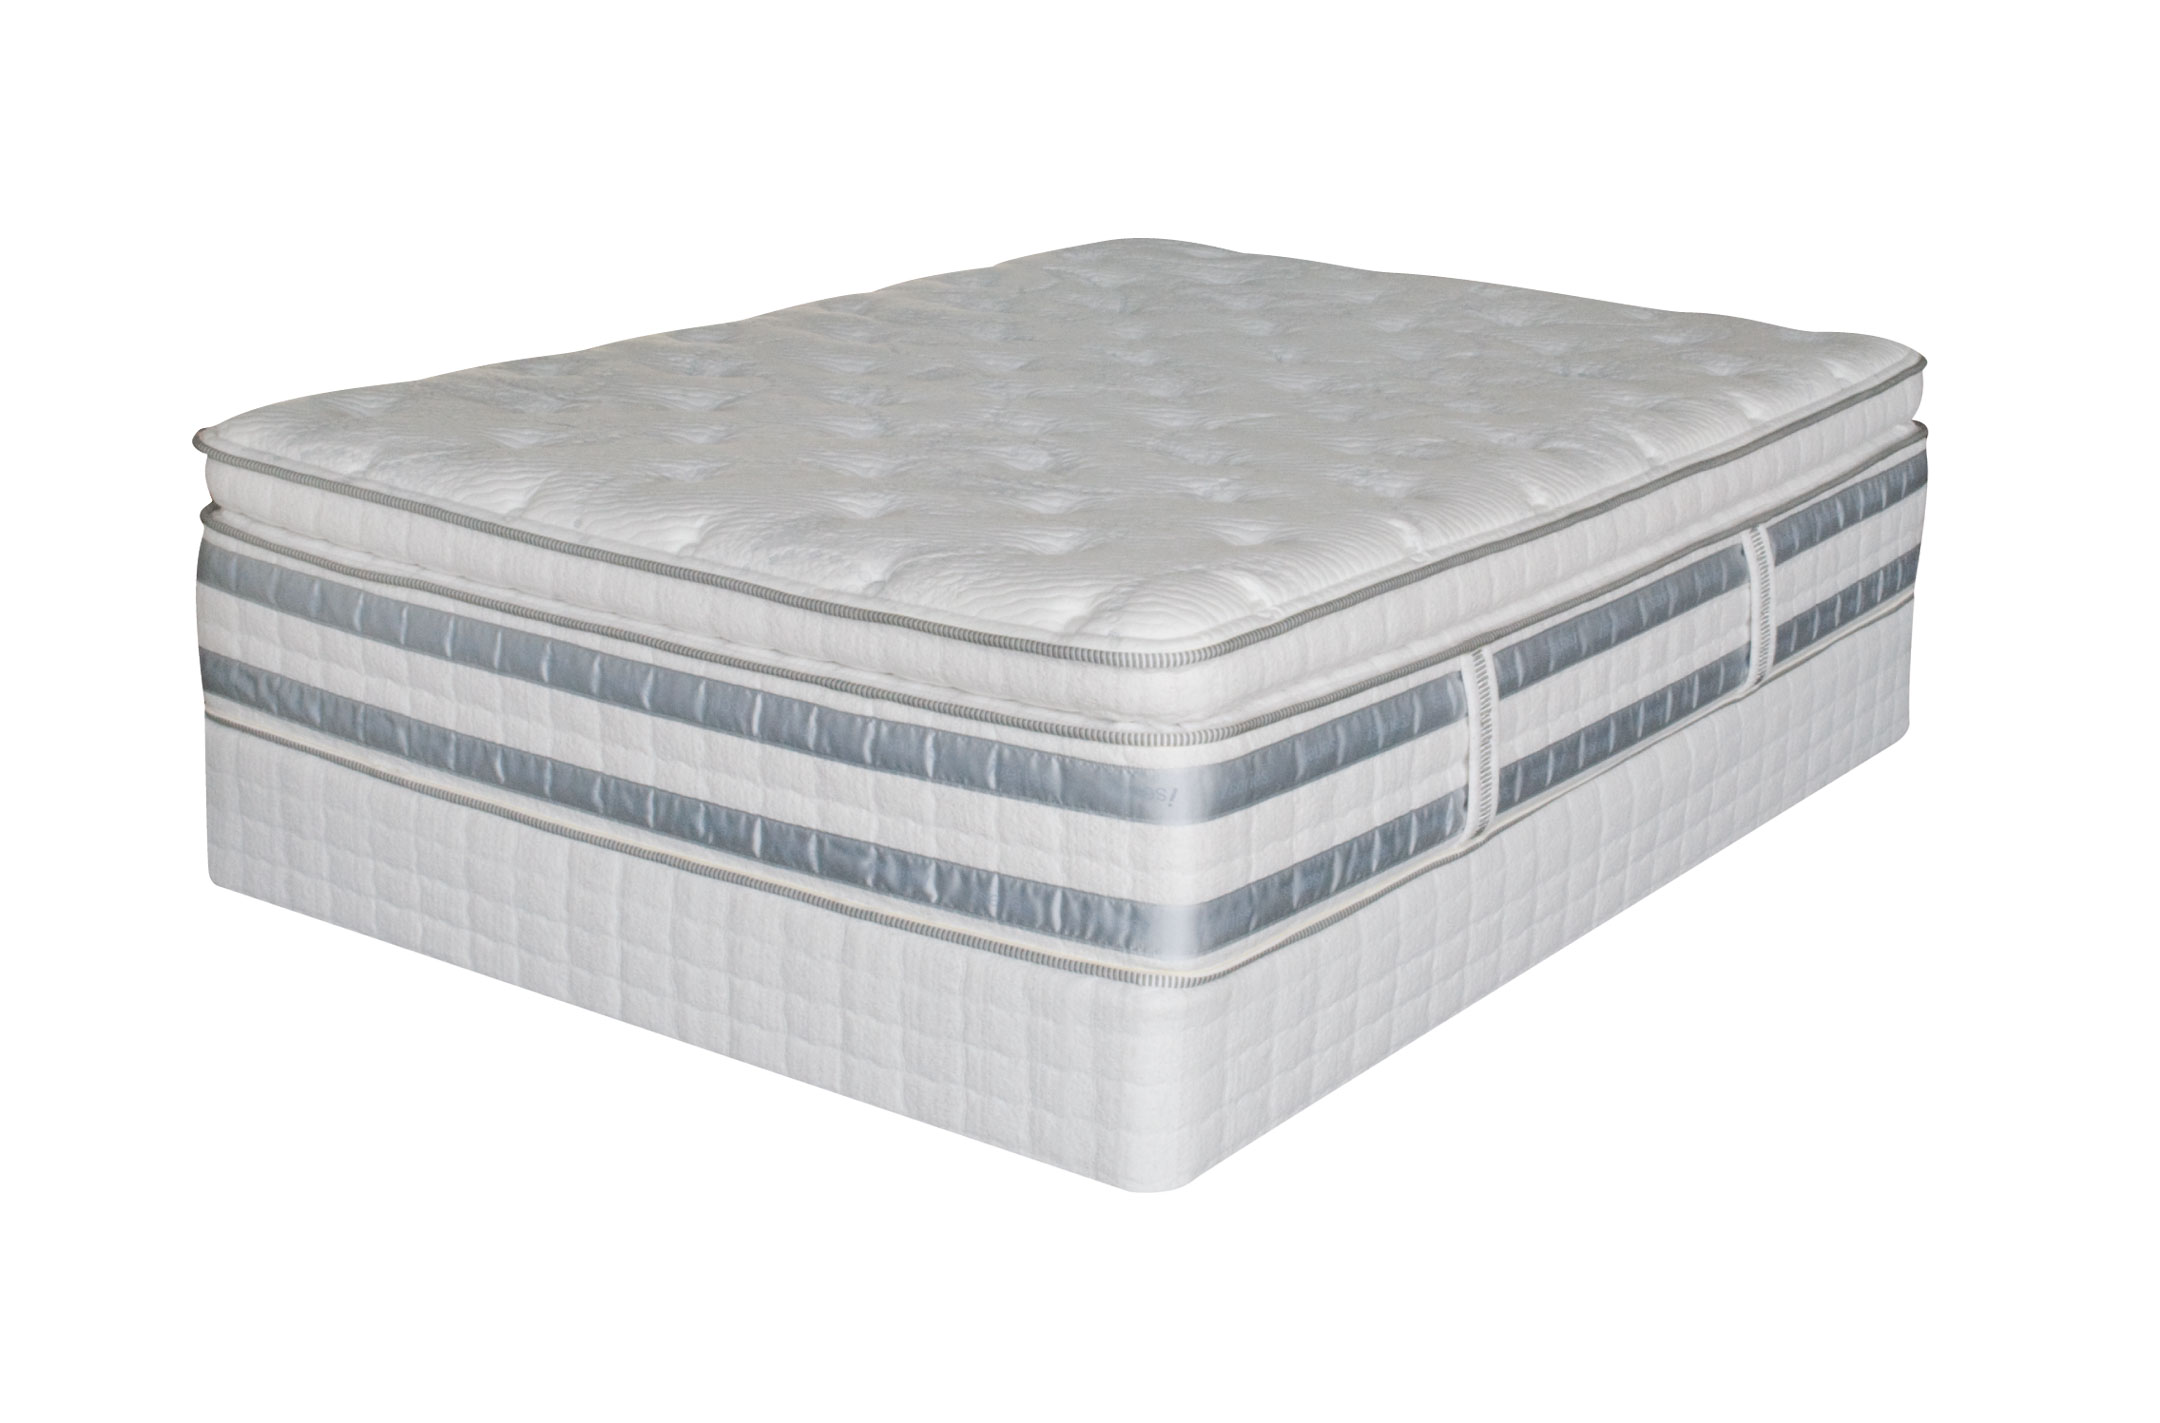 Stearns And Foster Mattress Prices ... Day iSeries Ceremony Super Pillow Top - Mattress Reviews - GoodBed.com